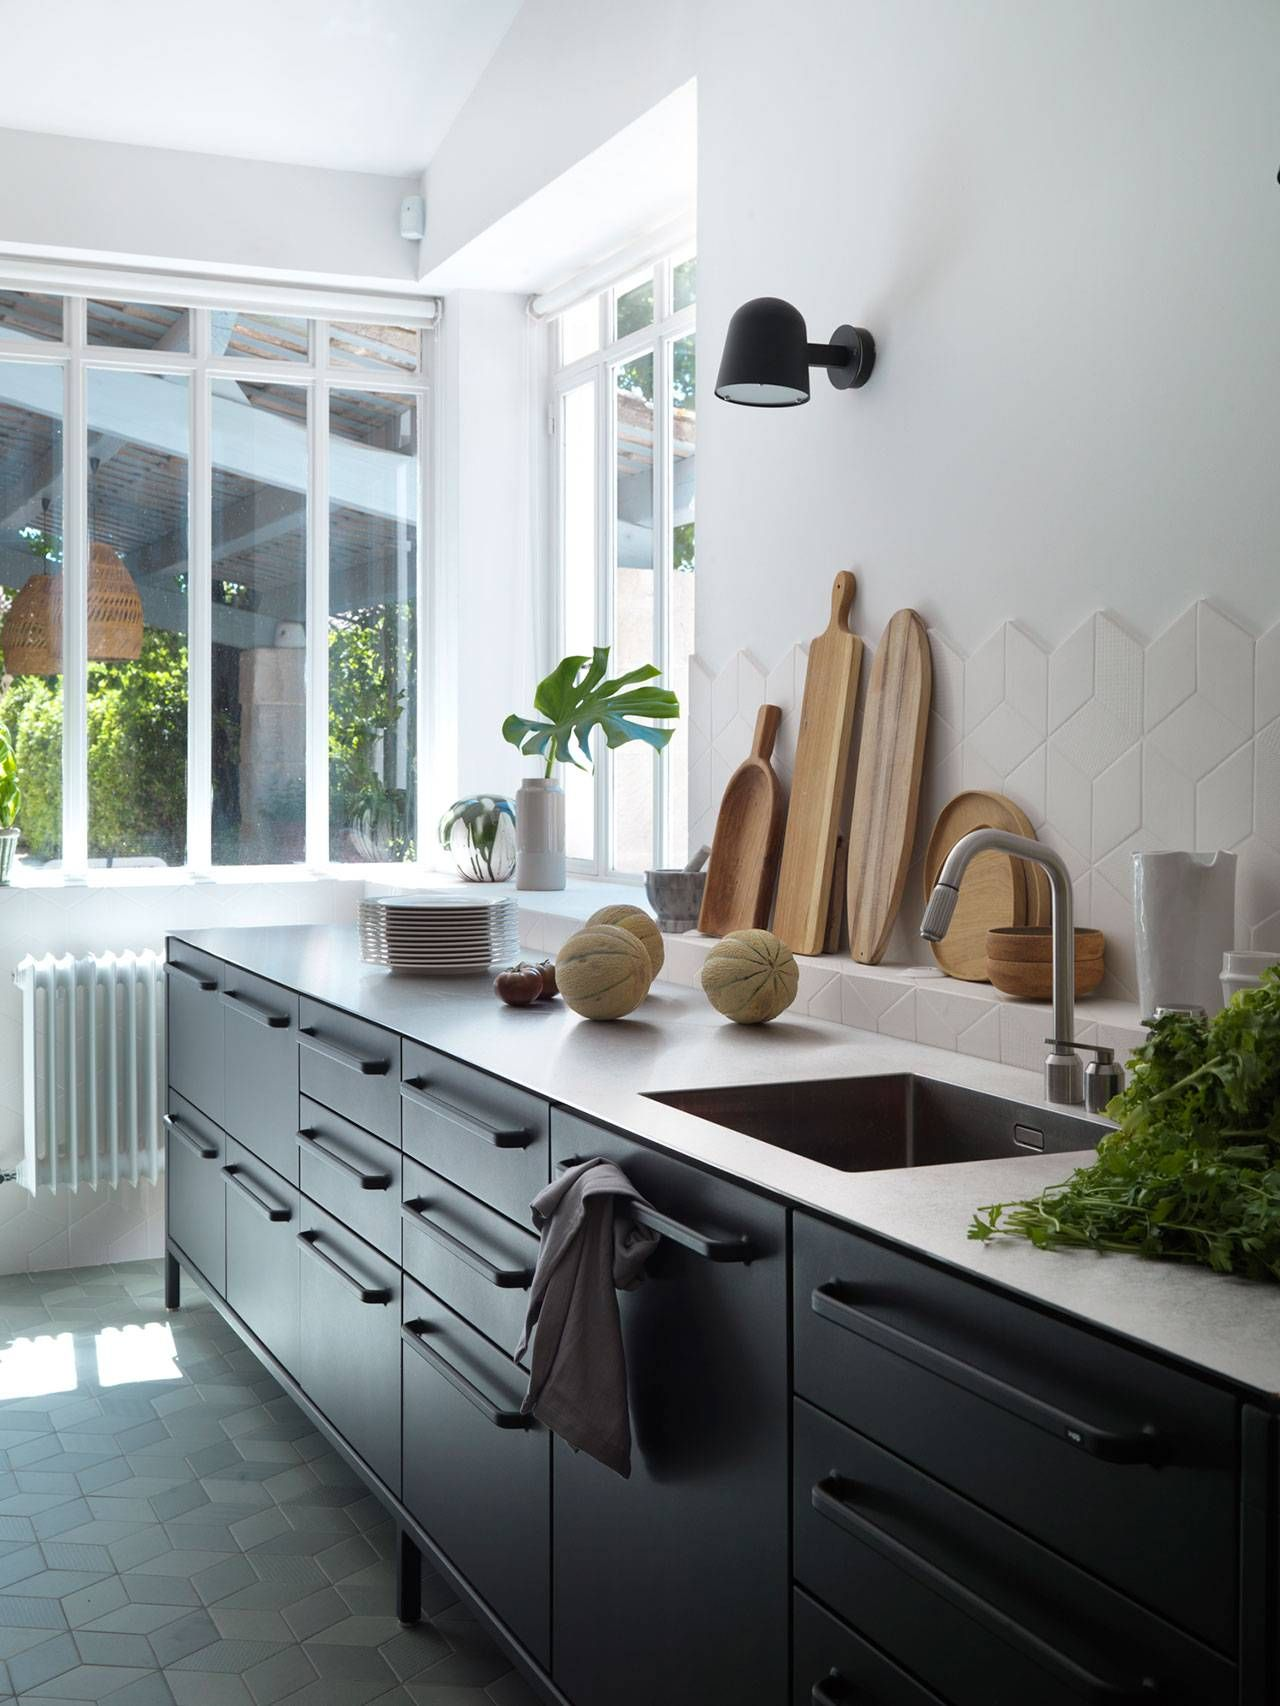 Vipp Kitchen In Provence Stainless Steel Kitchen Countertops Kitchen Interior Replacing Kitchen Countertops